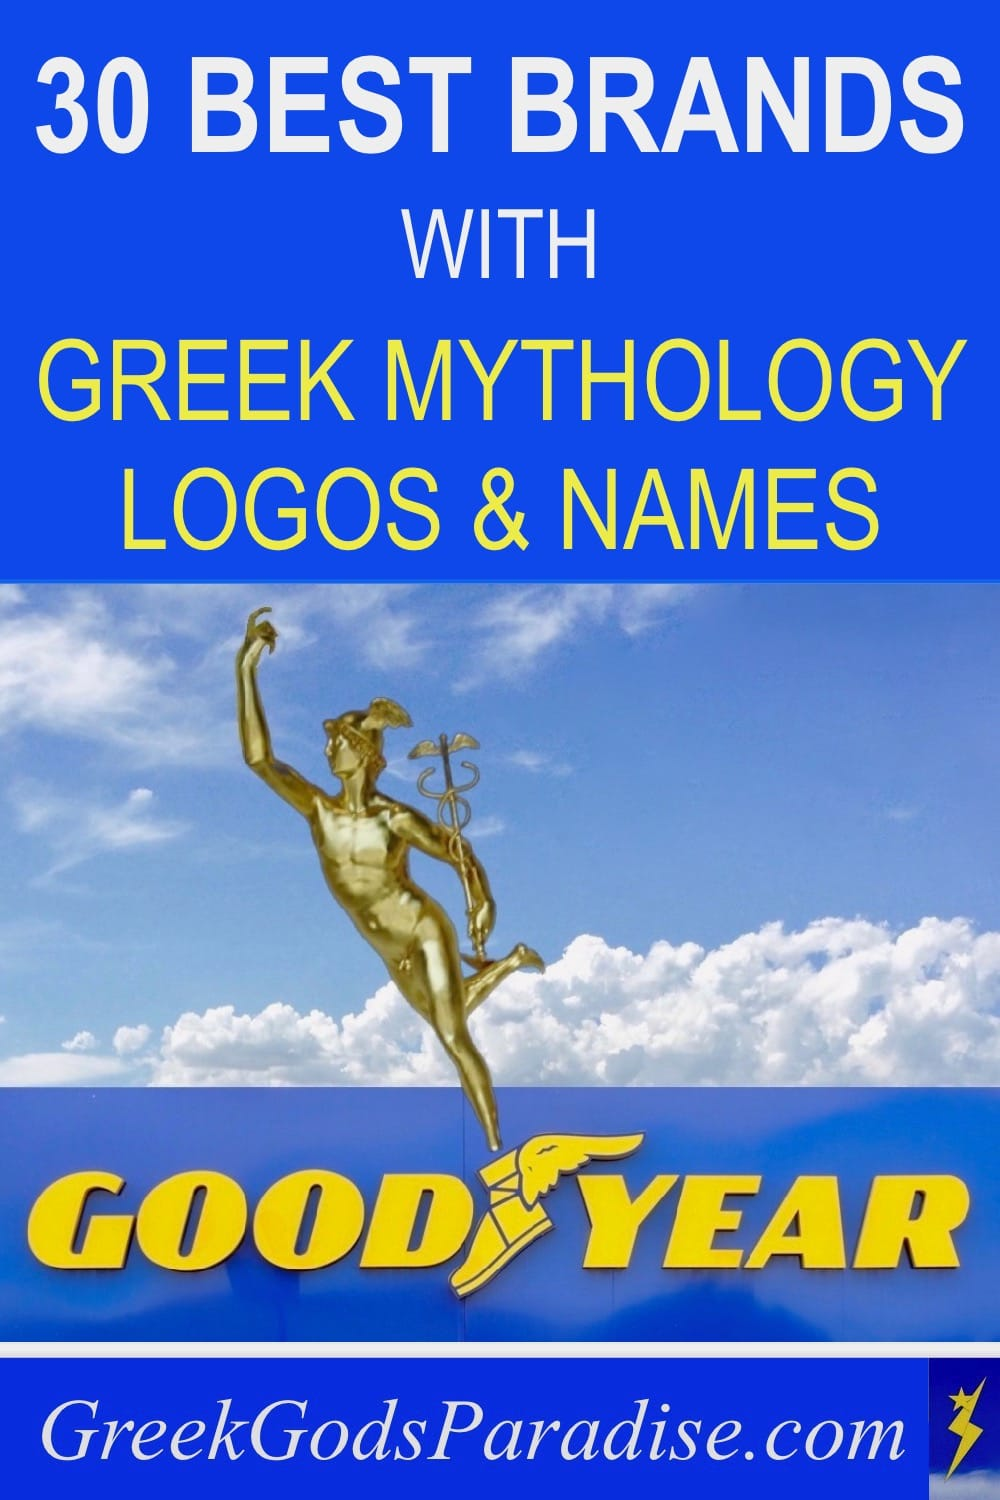 30 Best Brands with Greek Mythology Logos and Names